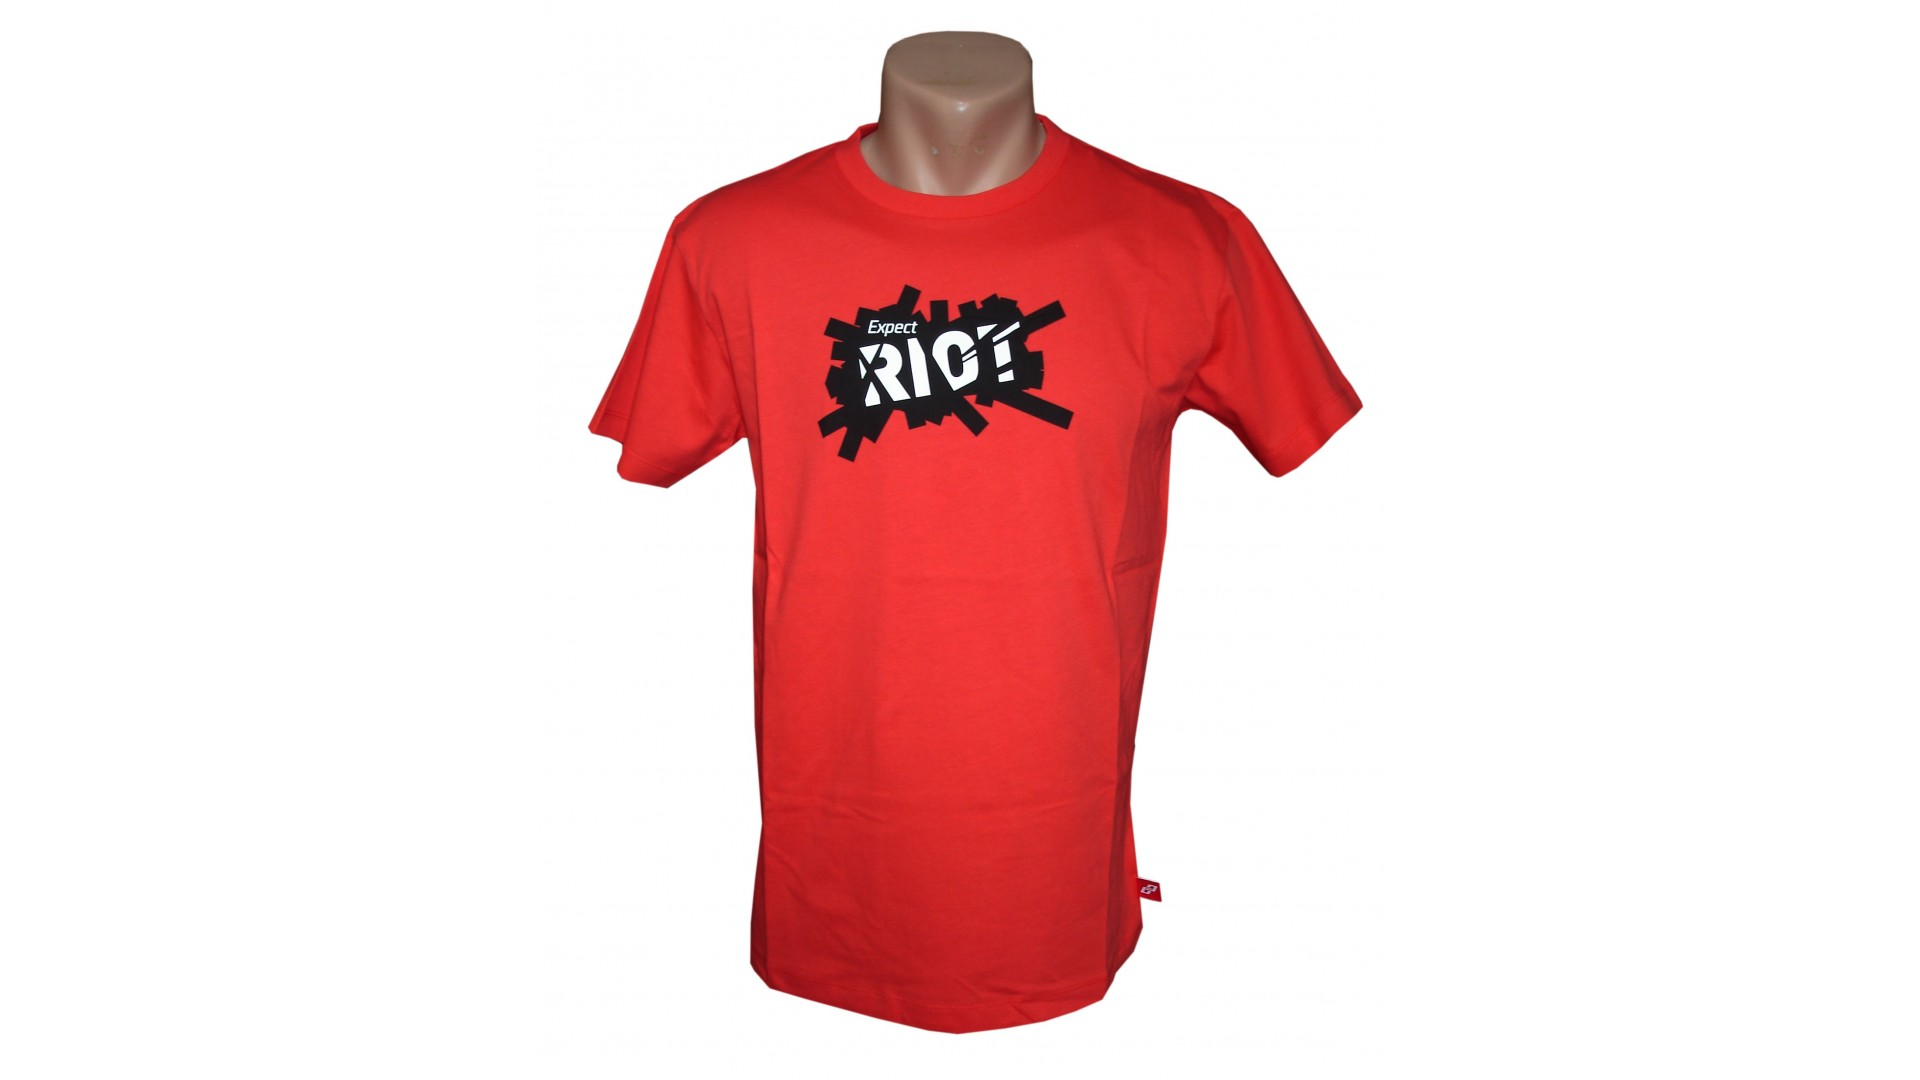 Футболка Ghost T-shirt Expect Riot red год 2014